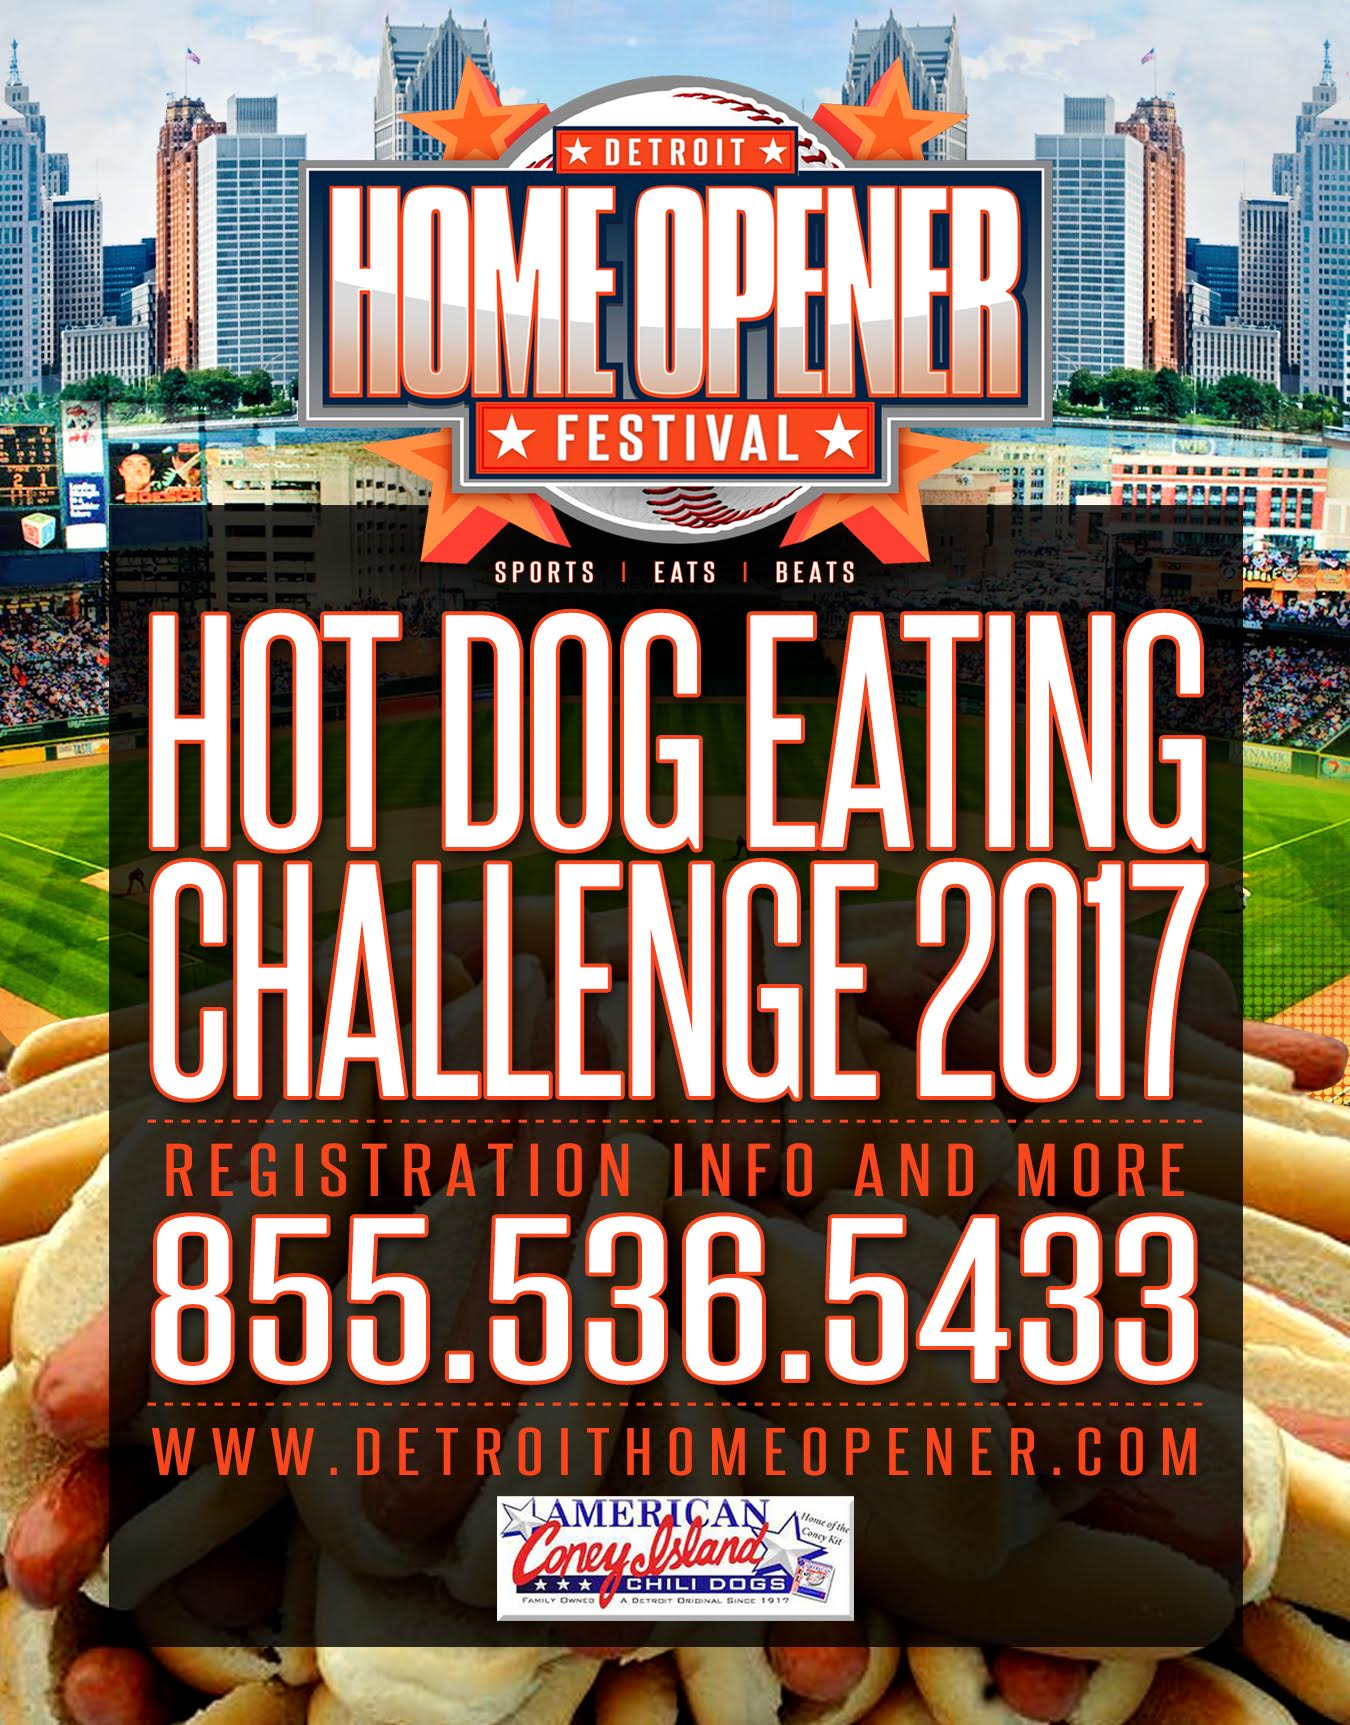 Are you a hotdog eating champion? Take the Challenge!